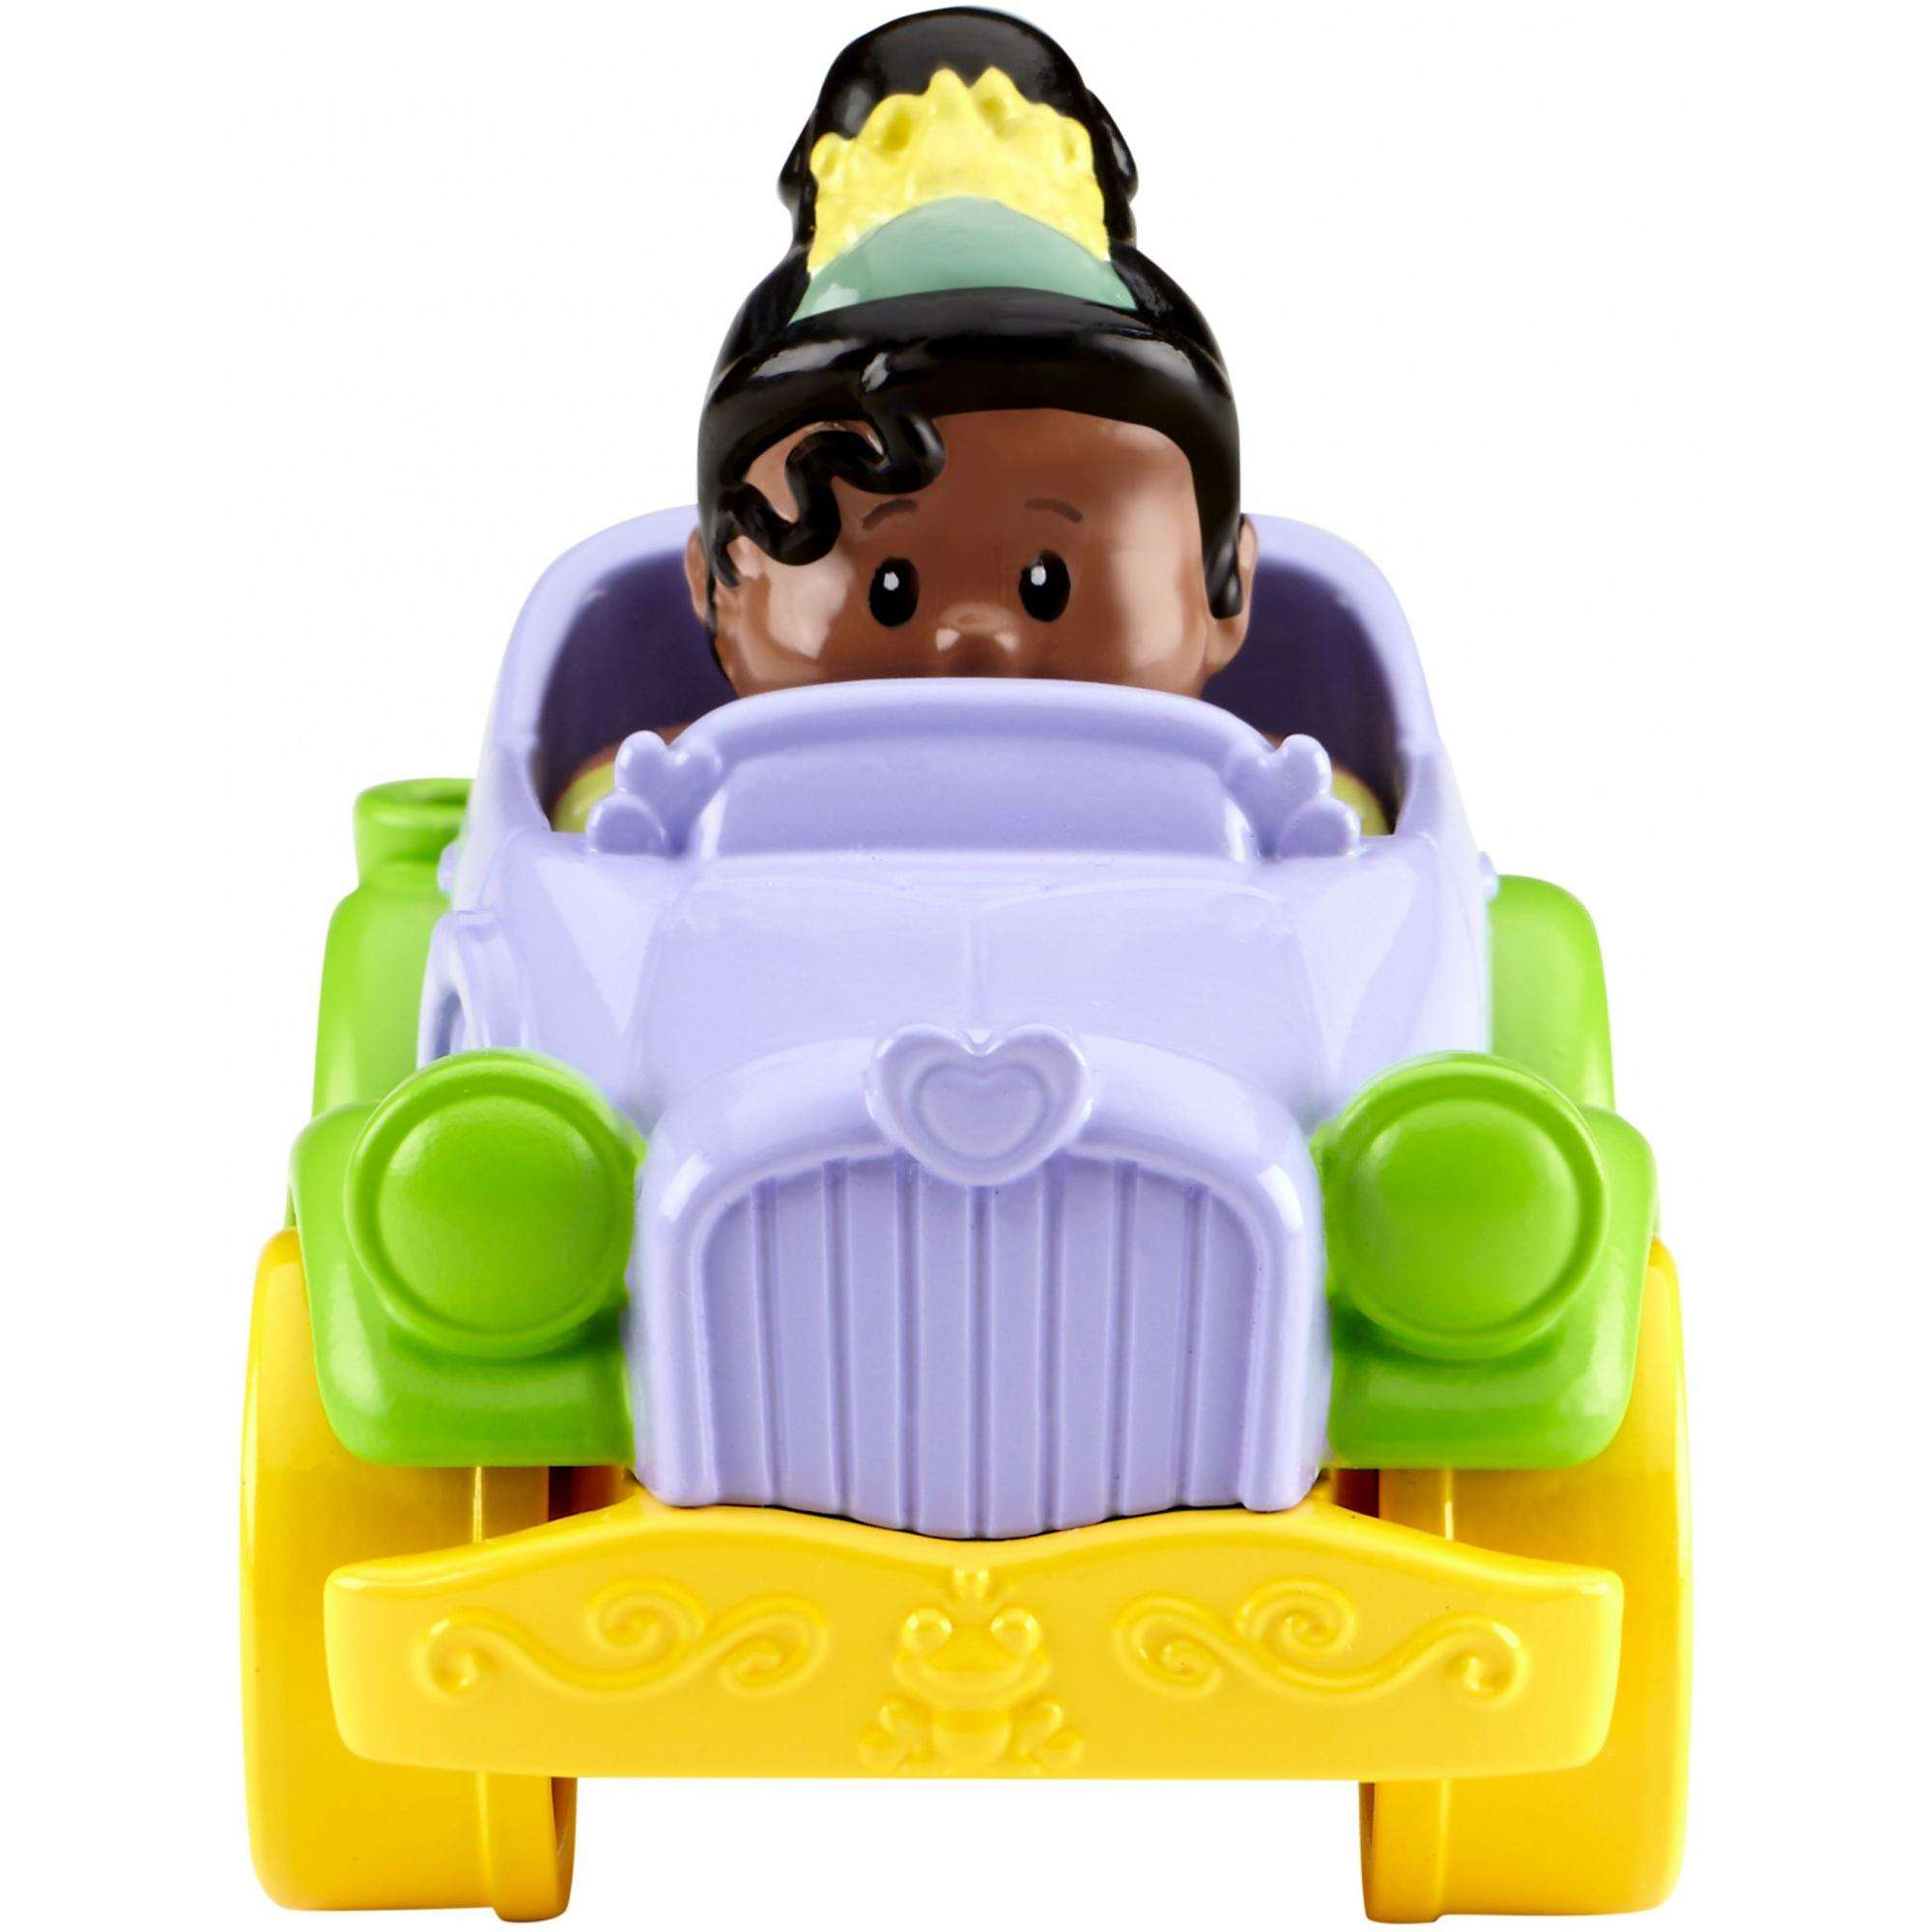 Disney Princess Tiana's Old Fashioned Car By Little People